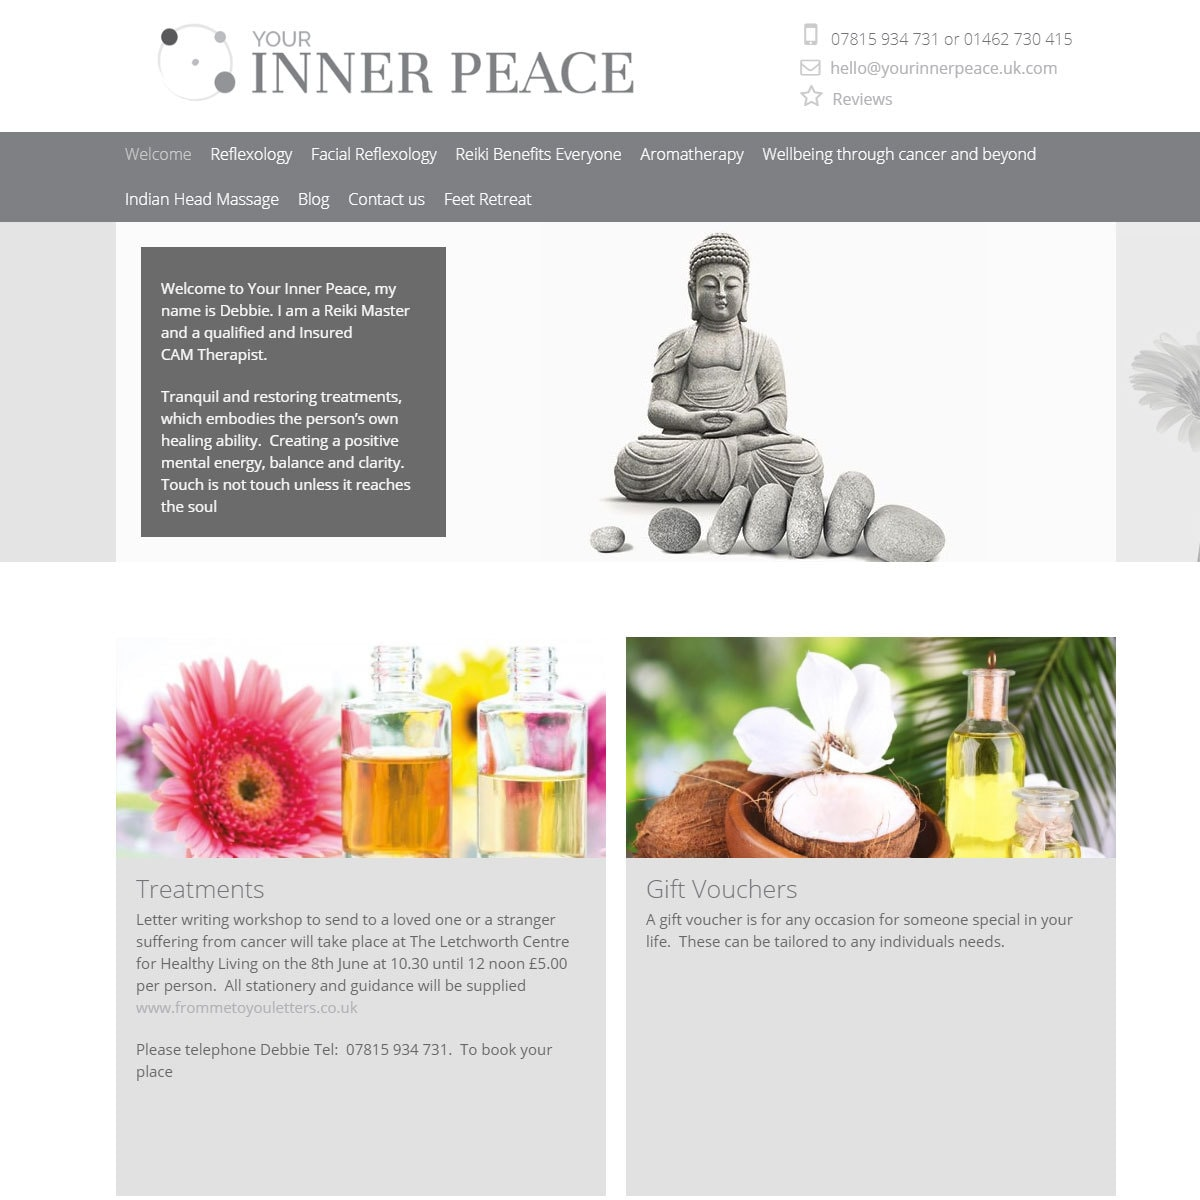 yourinnerpeace